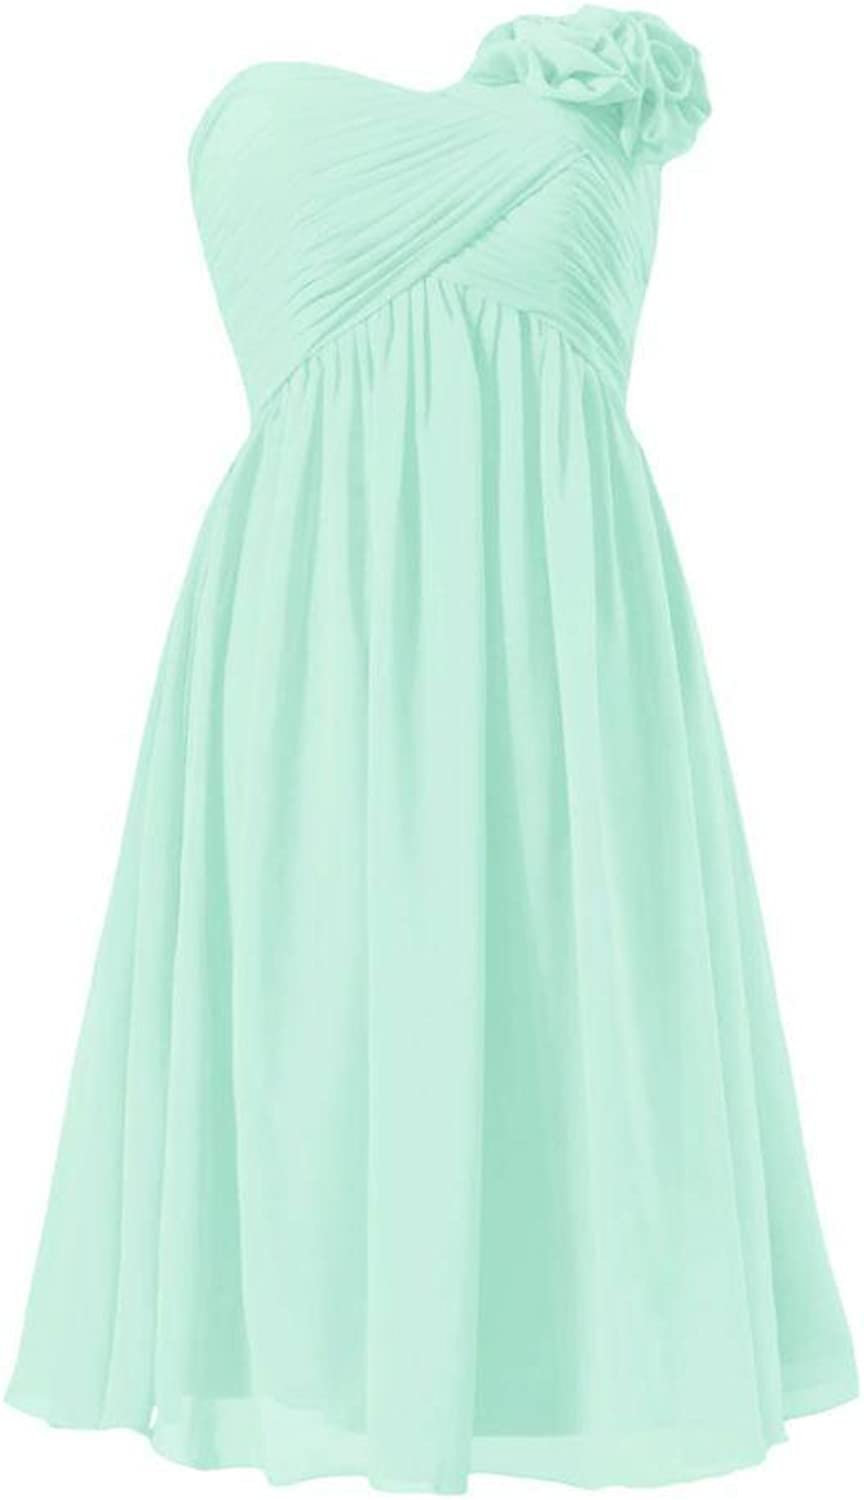 DaisyFormals reg; Beach Wedding Bridesmaid Dress Short Party Dress (BM2425)